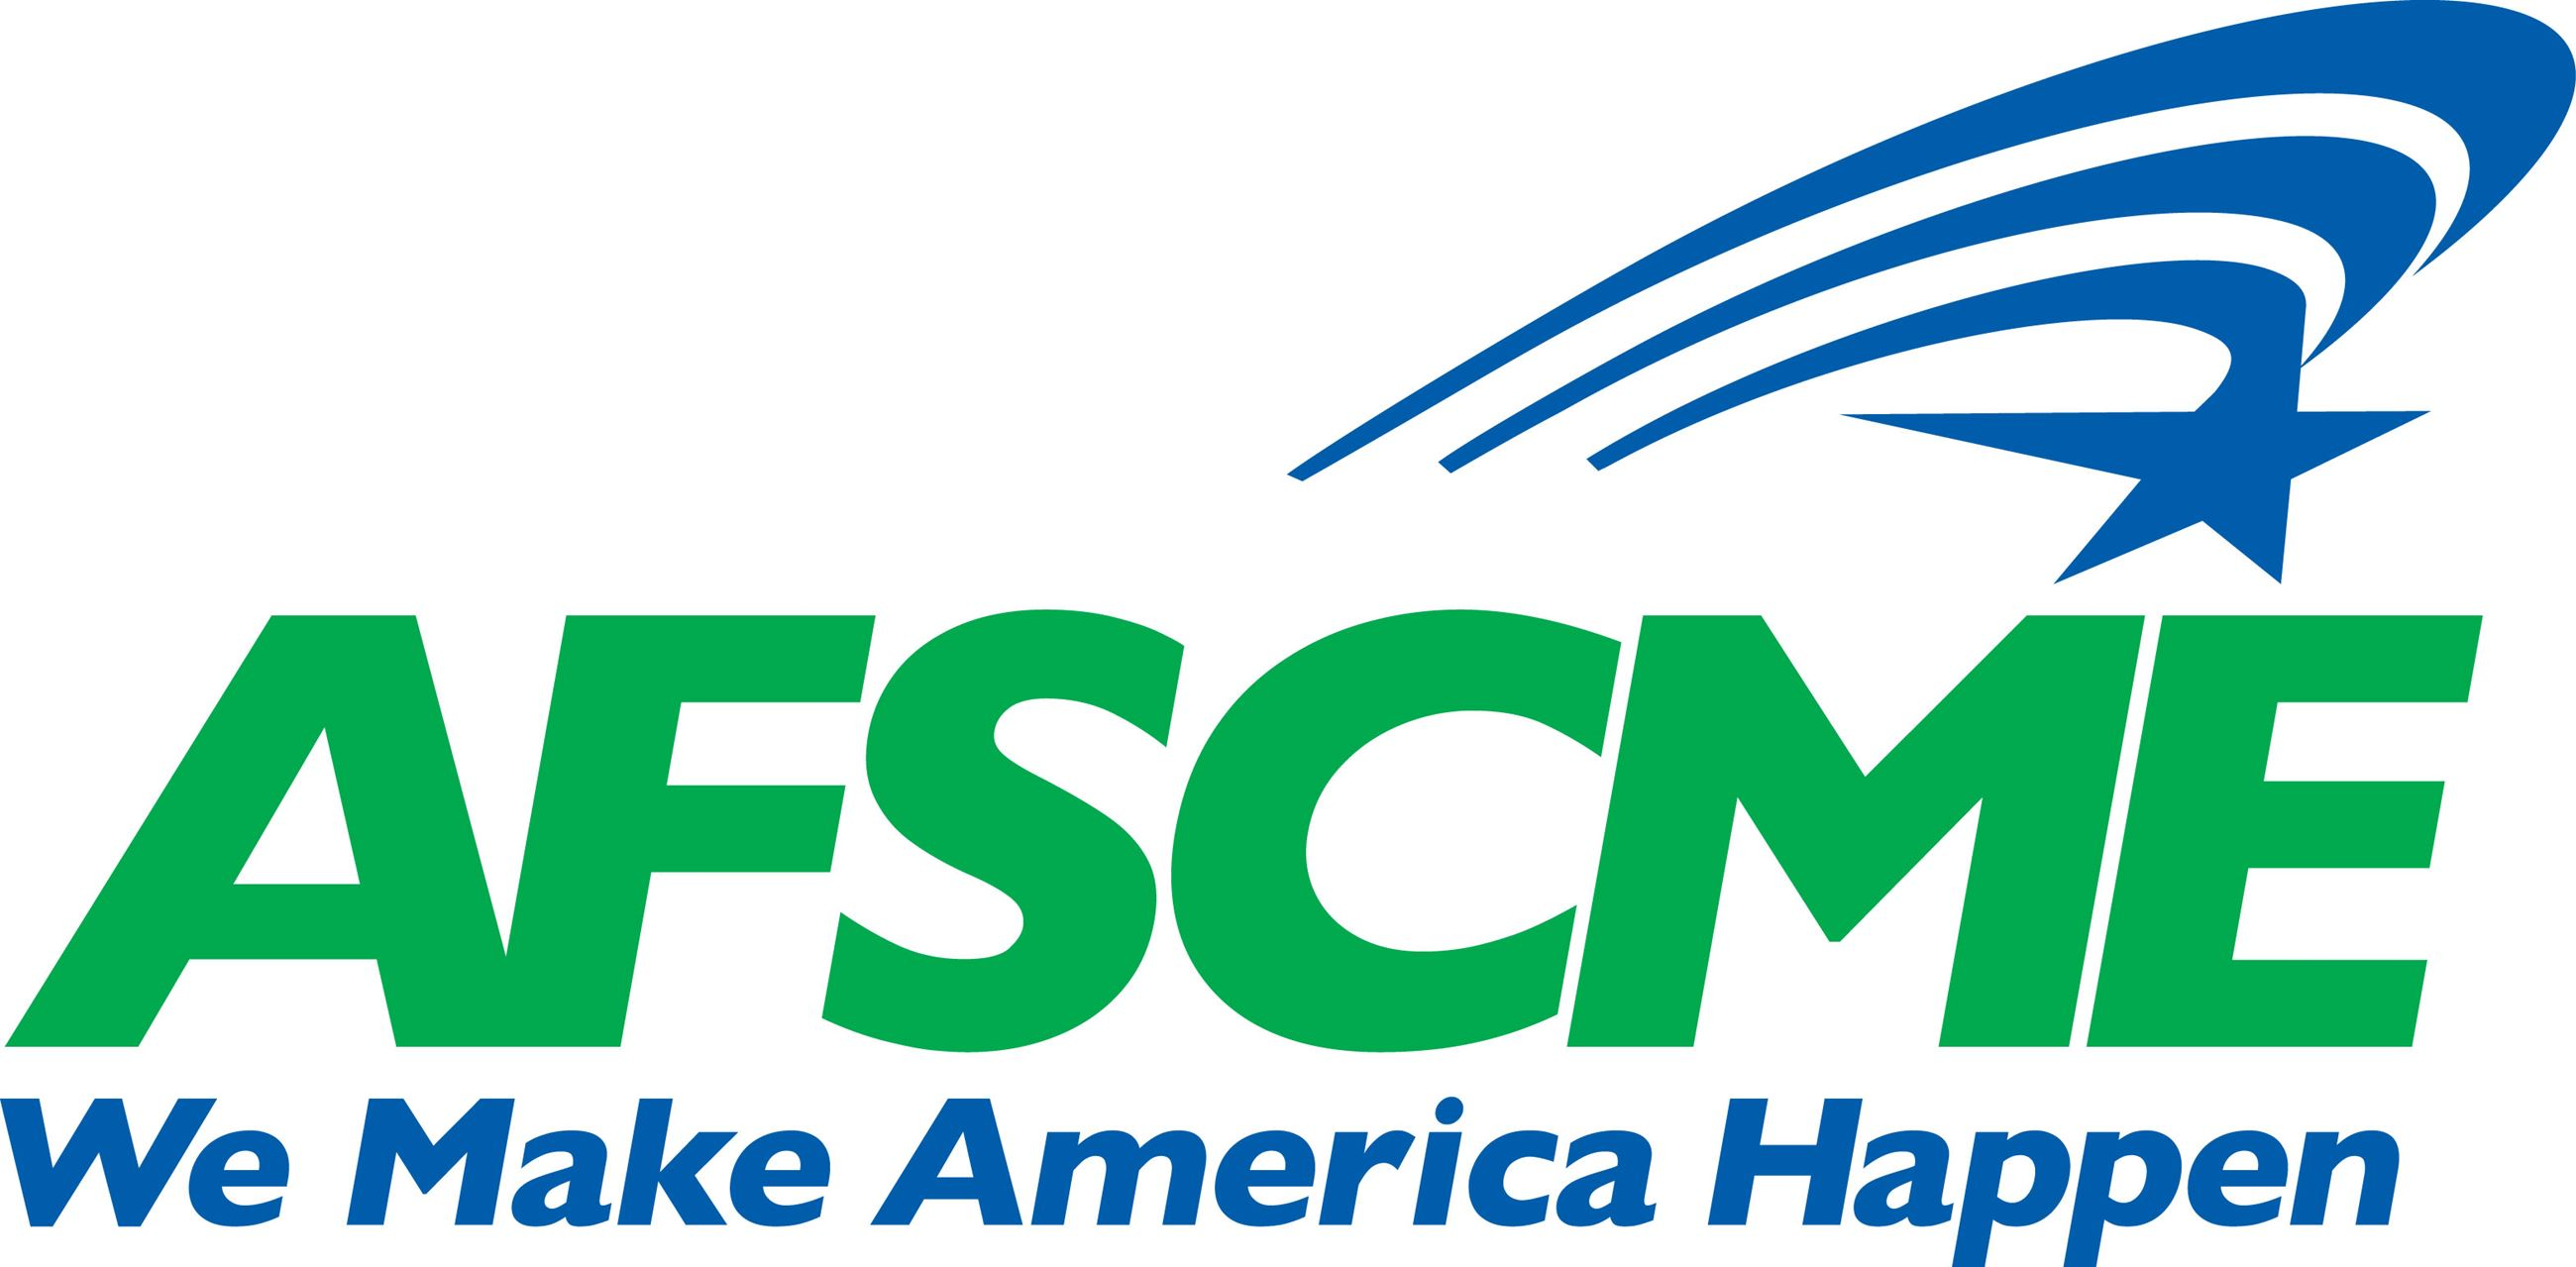 AFSCME We Make America Happen